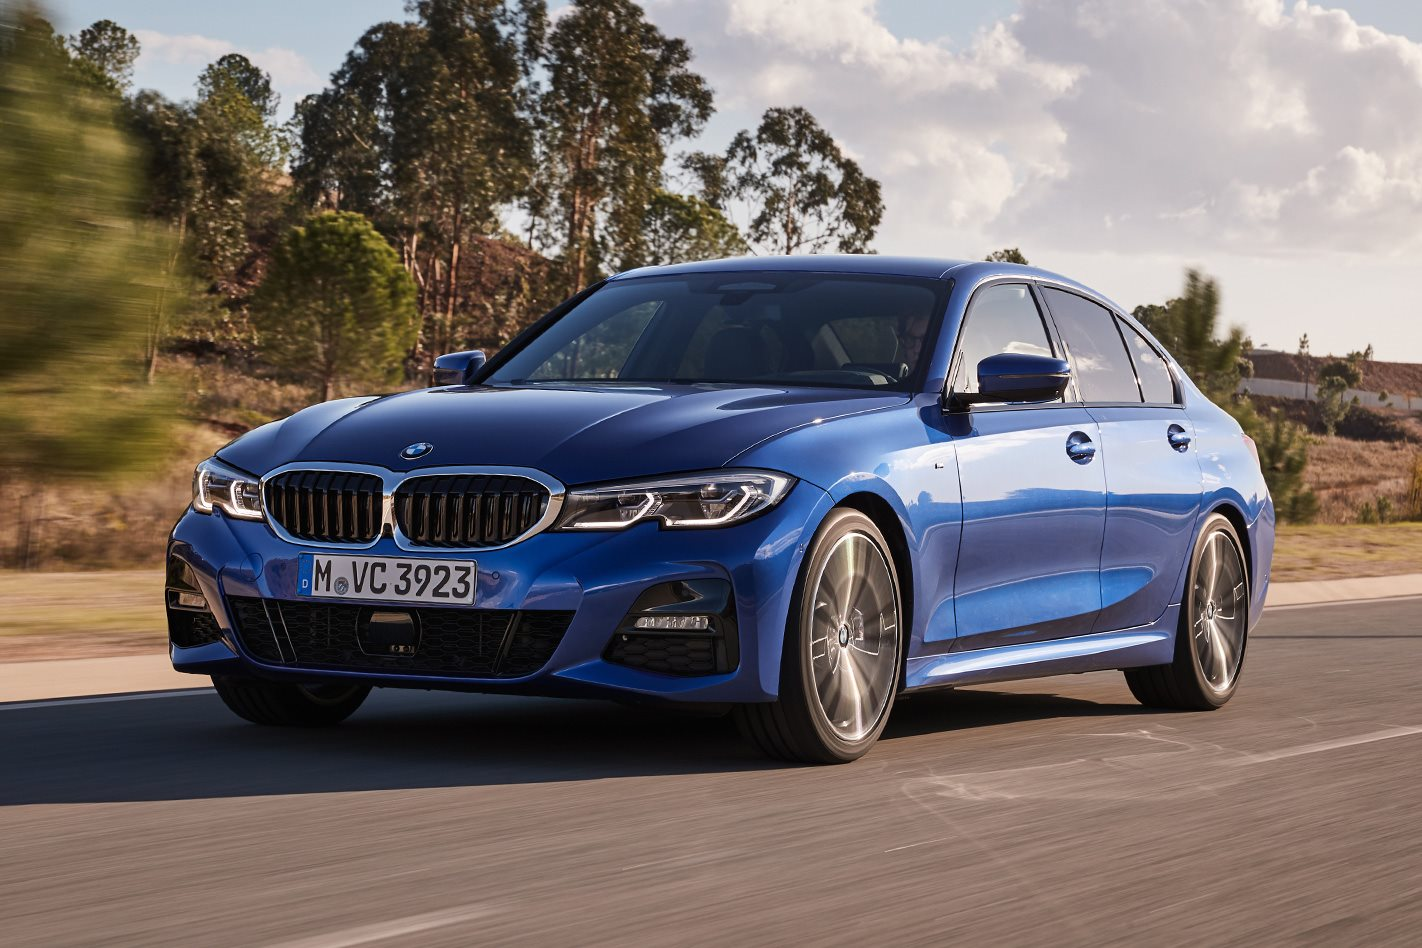 2019 Bmw 3 Series Full Range Price And Features Announced